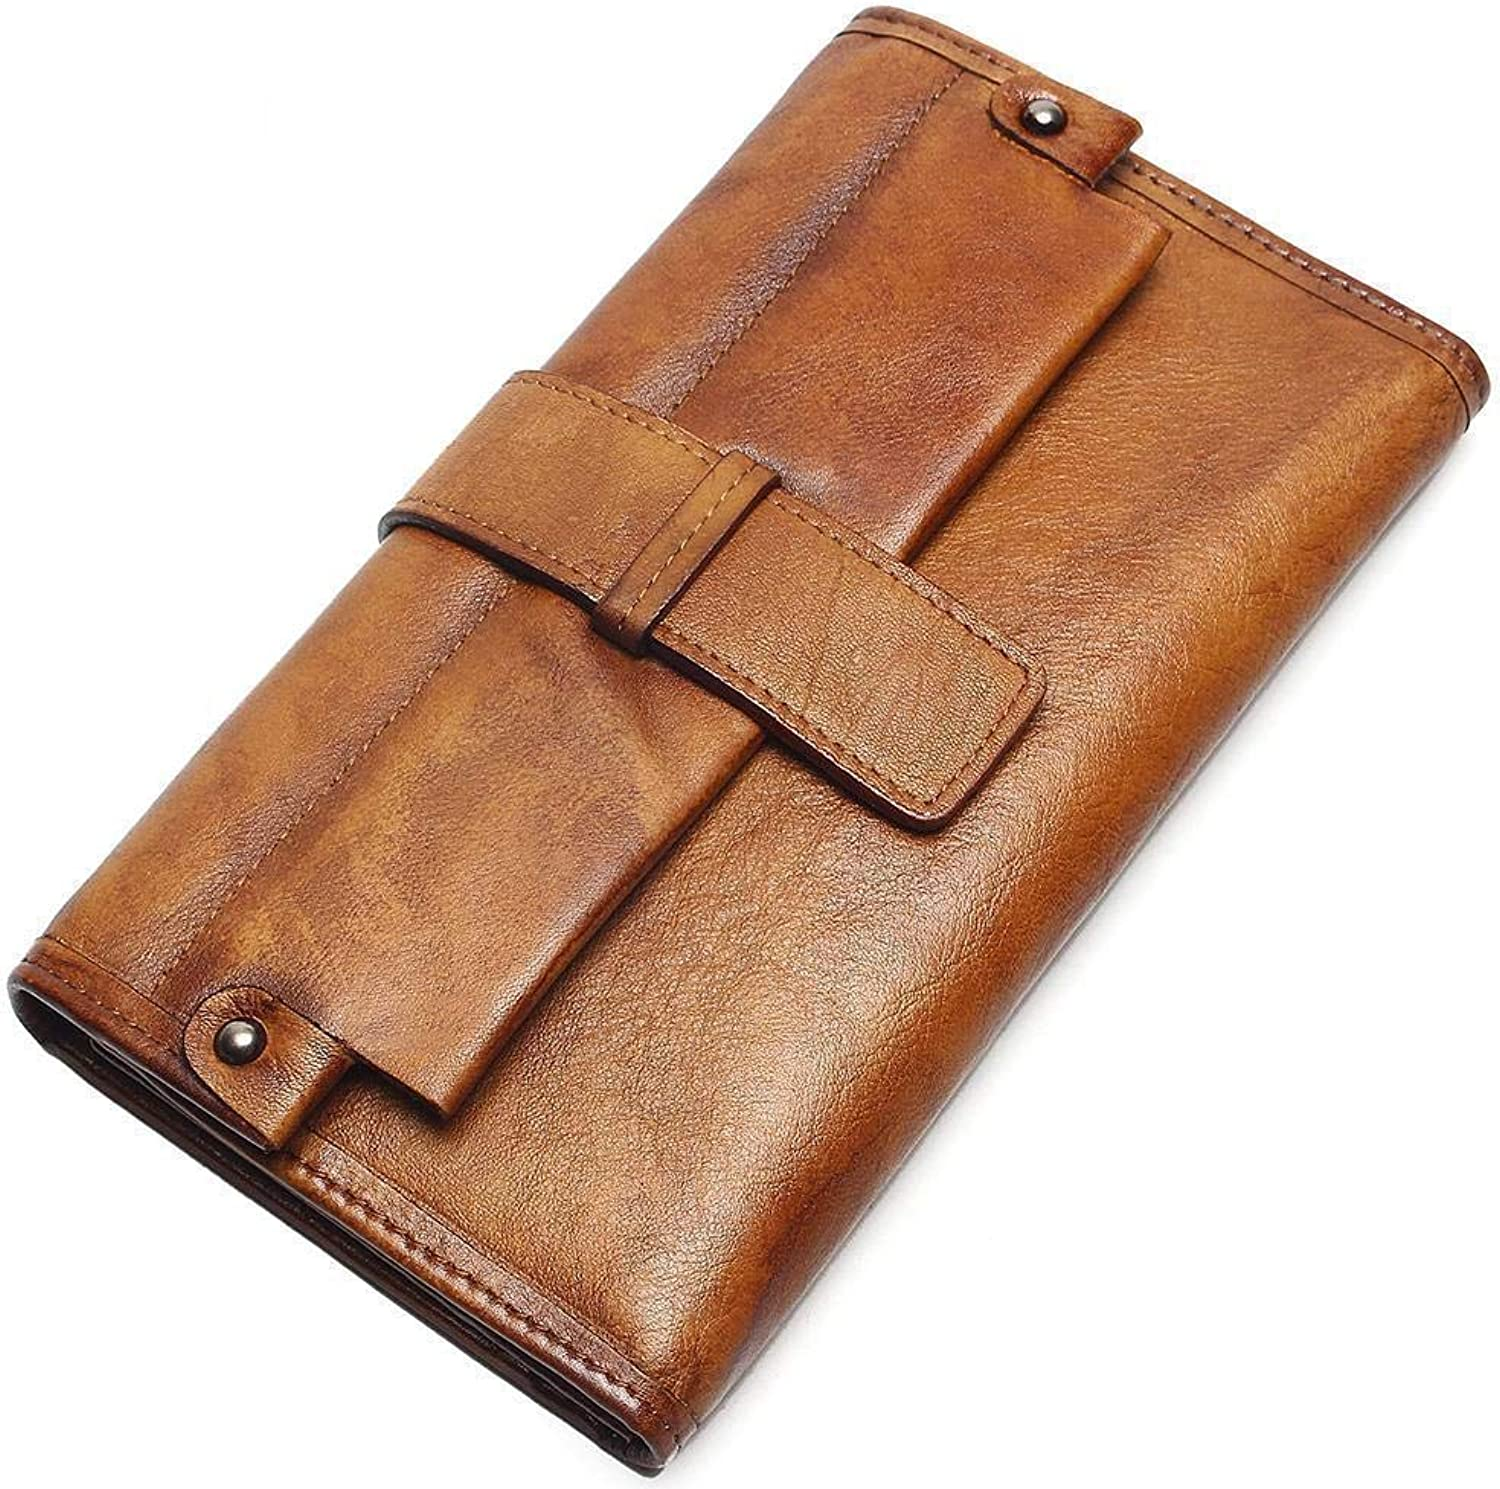 Mayanyan HandDyed Unisex Long Wallet Card Baotou Layer Cowhide Leather Casual Wallet Bag Clutch Bag